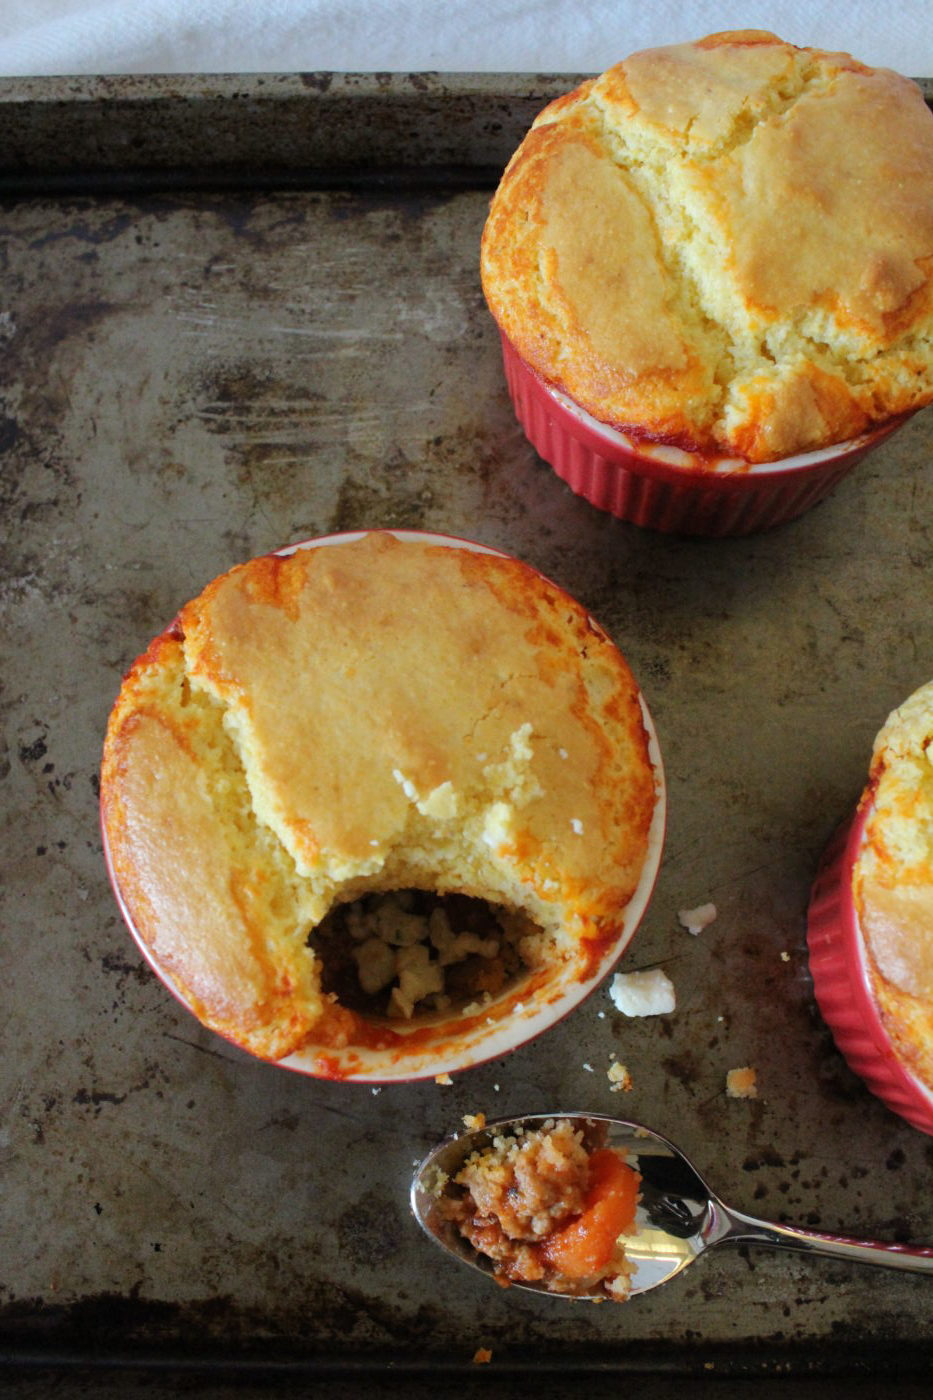 When you break into these delicious pot pies, crumble a little blue cheese inside for optimal flavor.